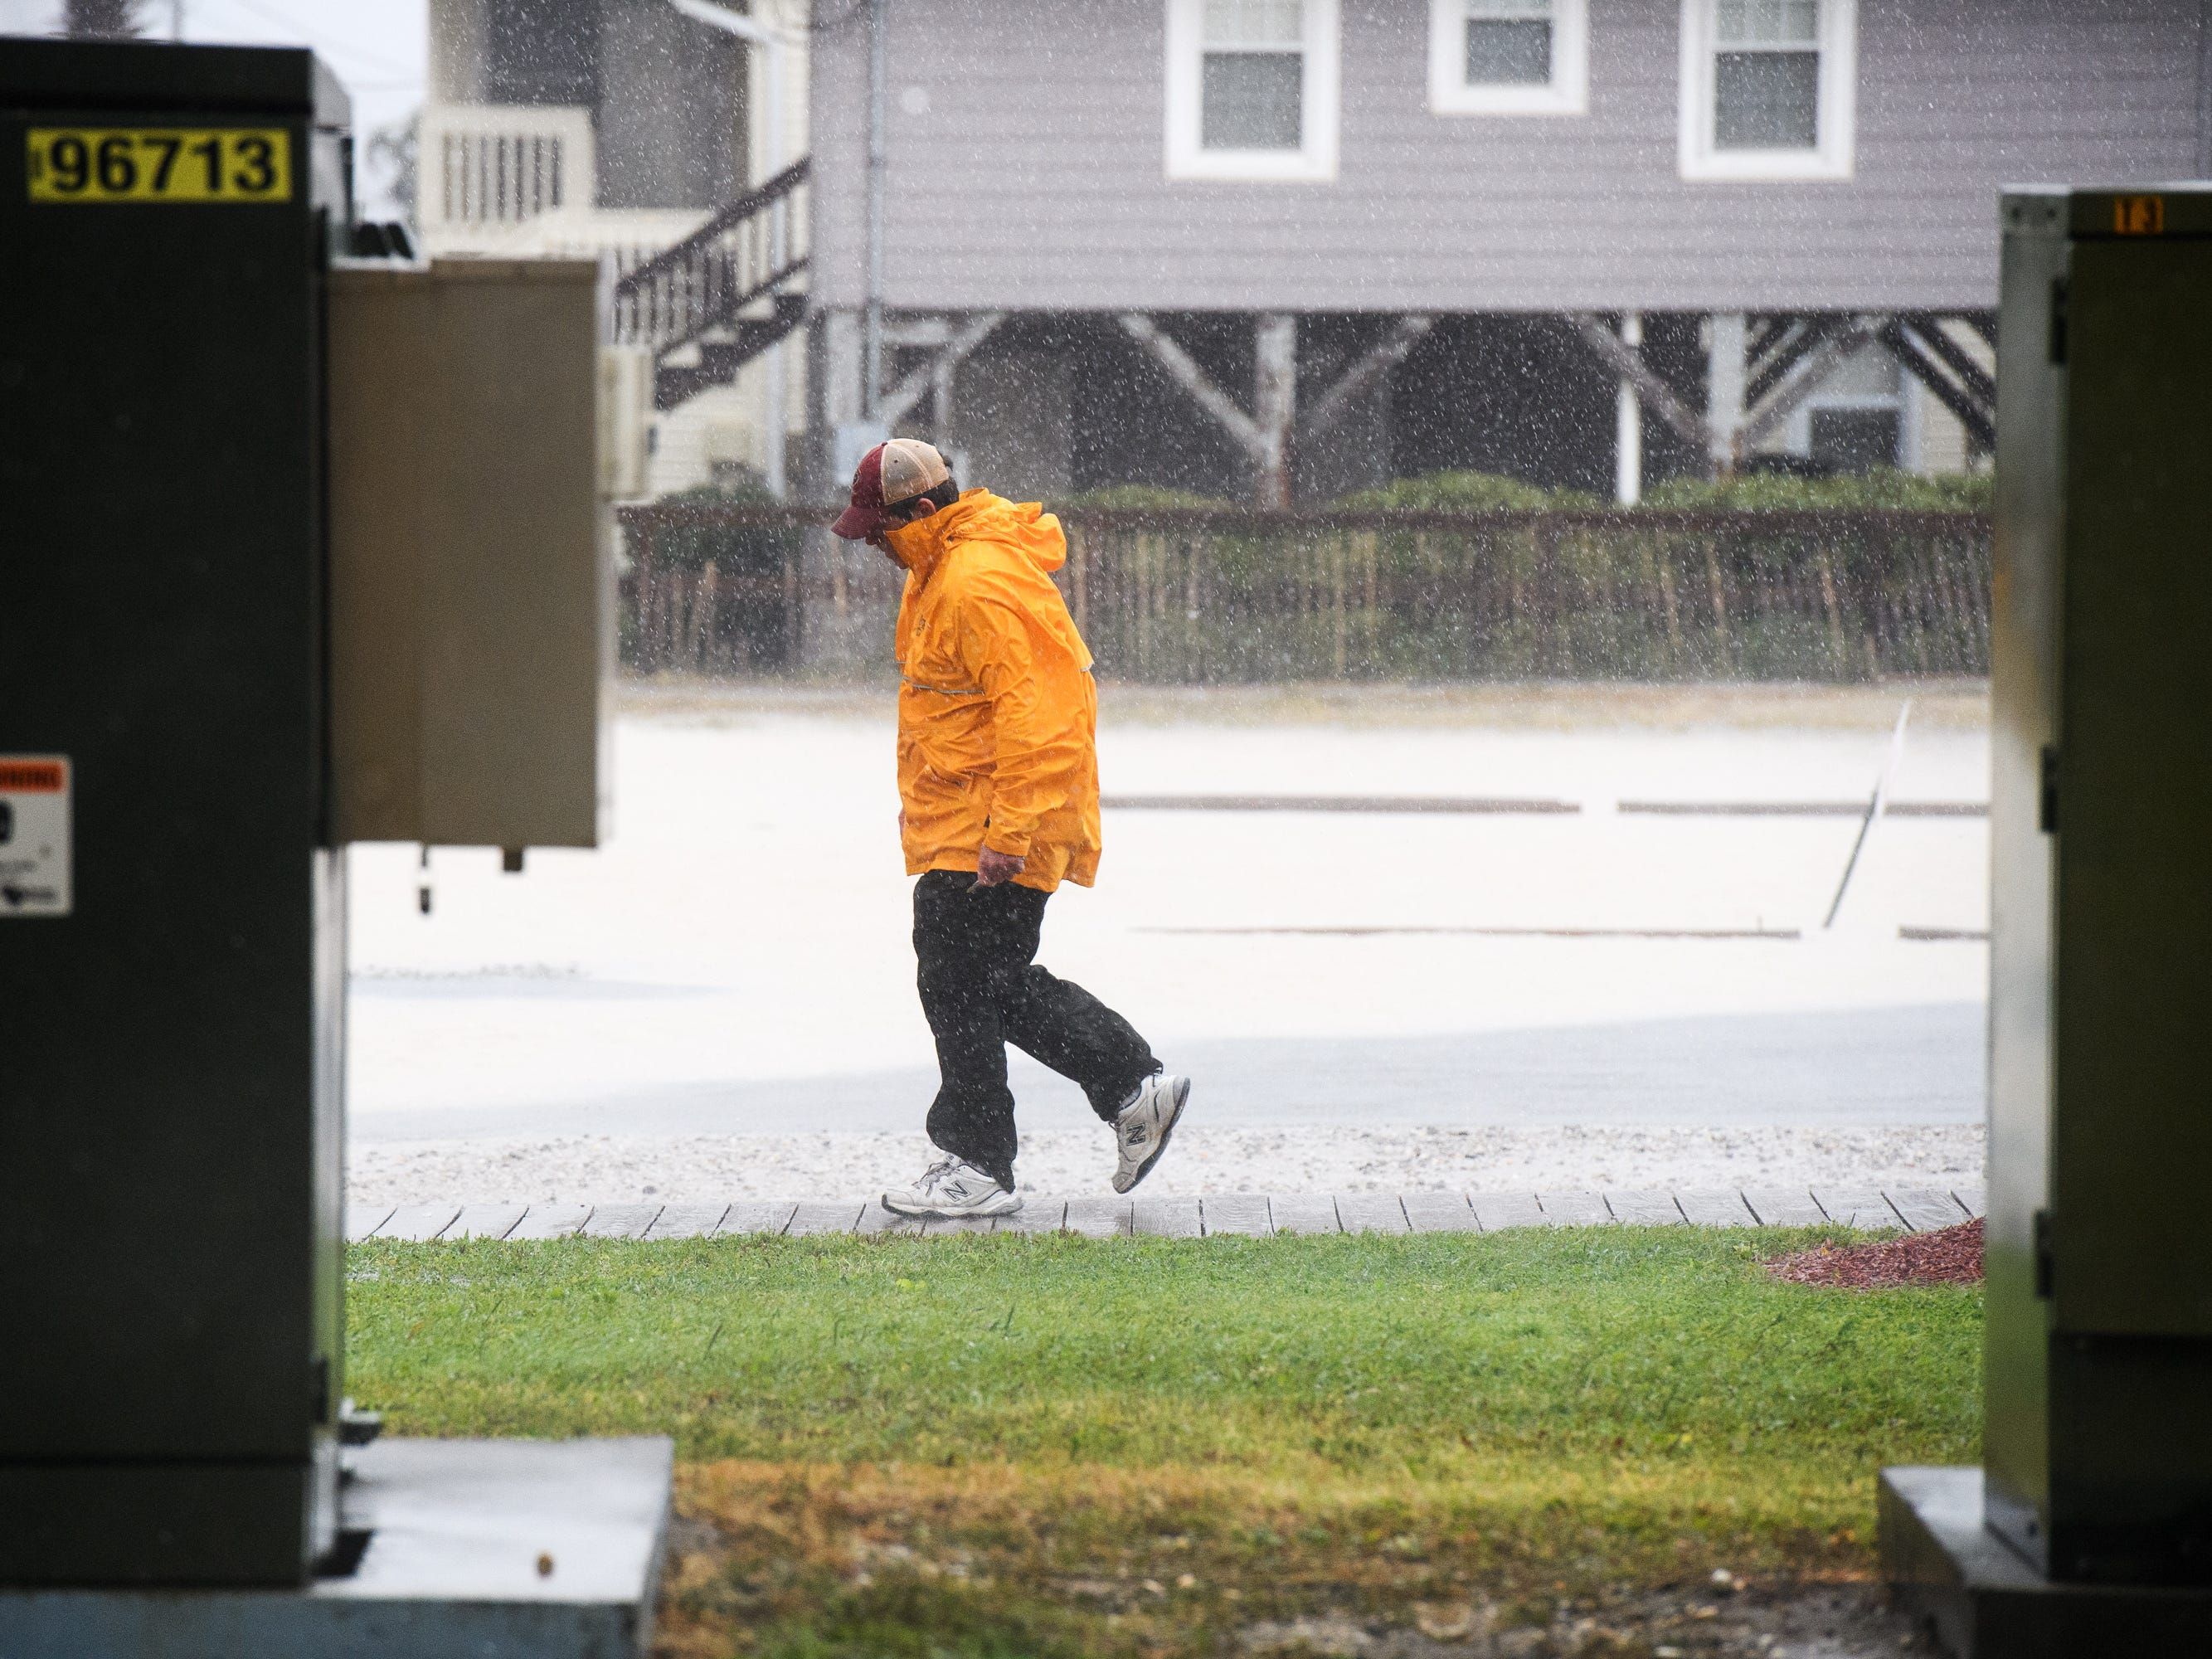 Steve Mann, operational manager for the Cherry Grove Pier, walks in a parking lot near the pier in North Myrtle Beach as wind and rain from Hurricane Florence begins to dramatically increase on Friday, Sept. 14, 2018.